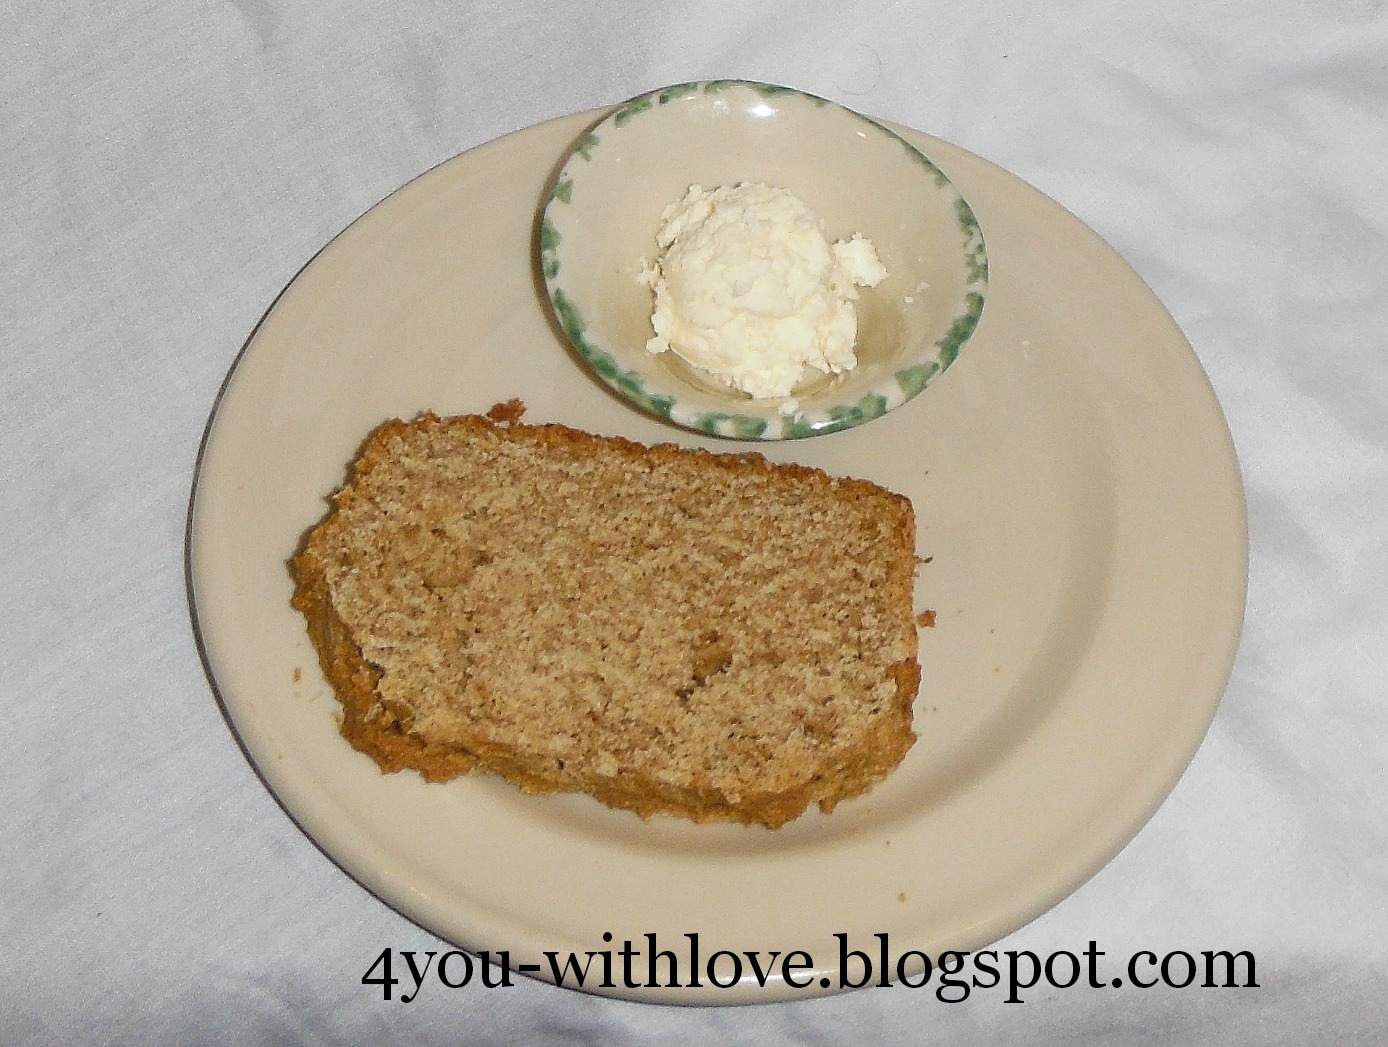 DIY Pantry - Cultured Butter (European Style Butter) - 4 You With Love